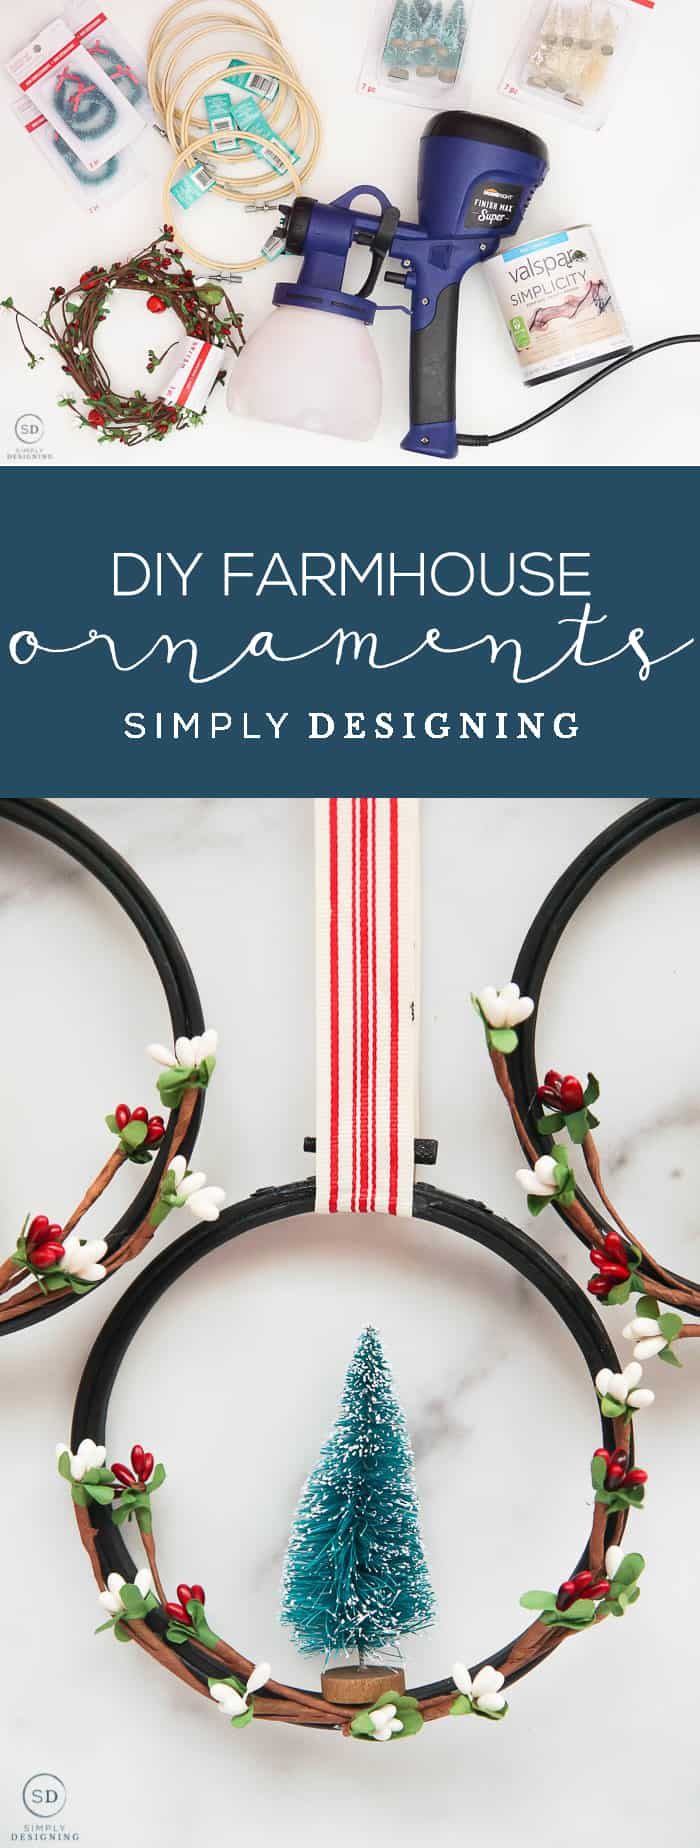 If you are looking for an easy and inexpensive way to decorate your tree this year check out this post about how to make farmhouse Christmas ornaments